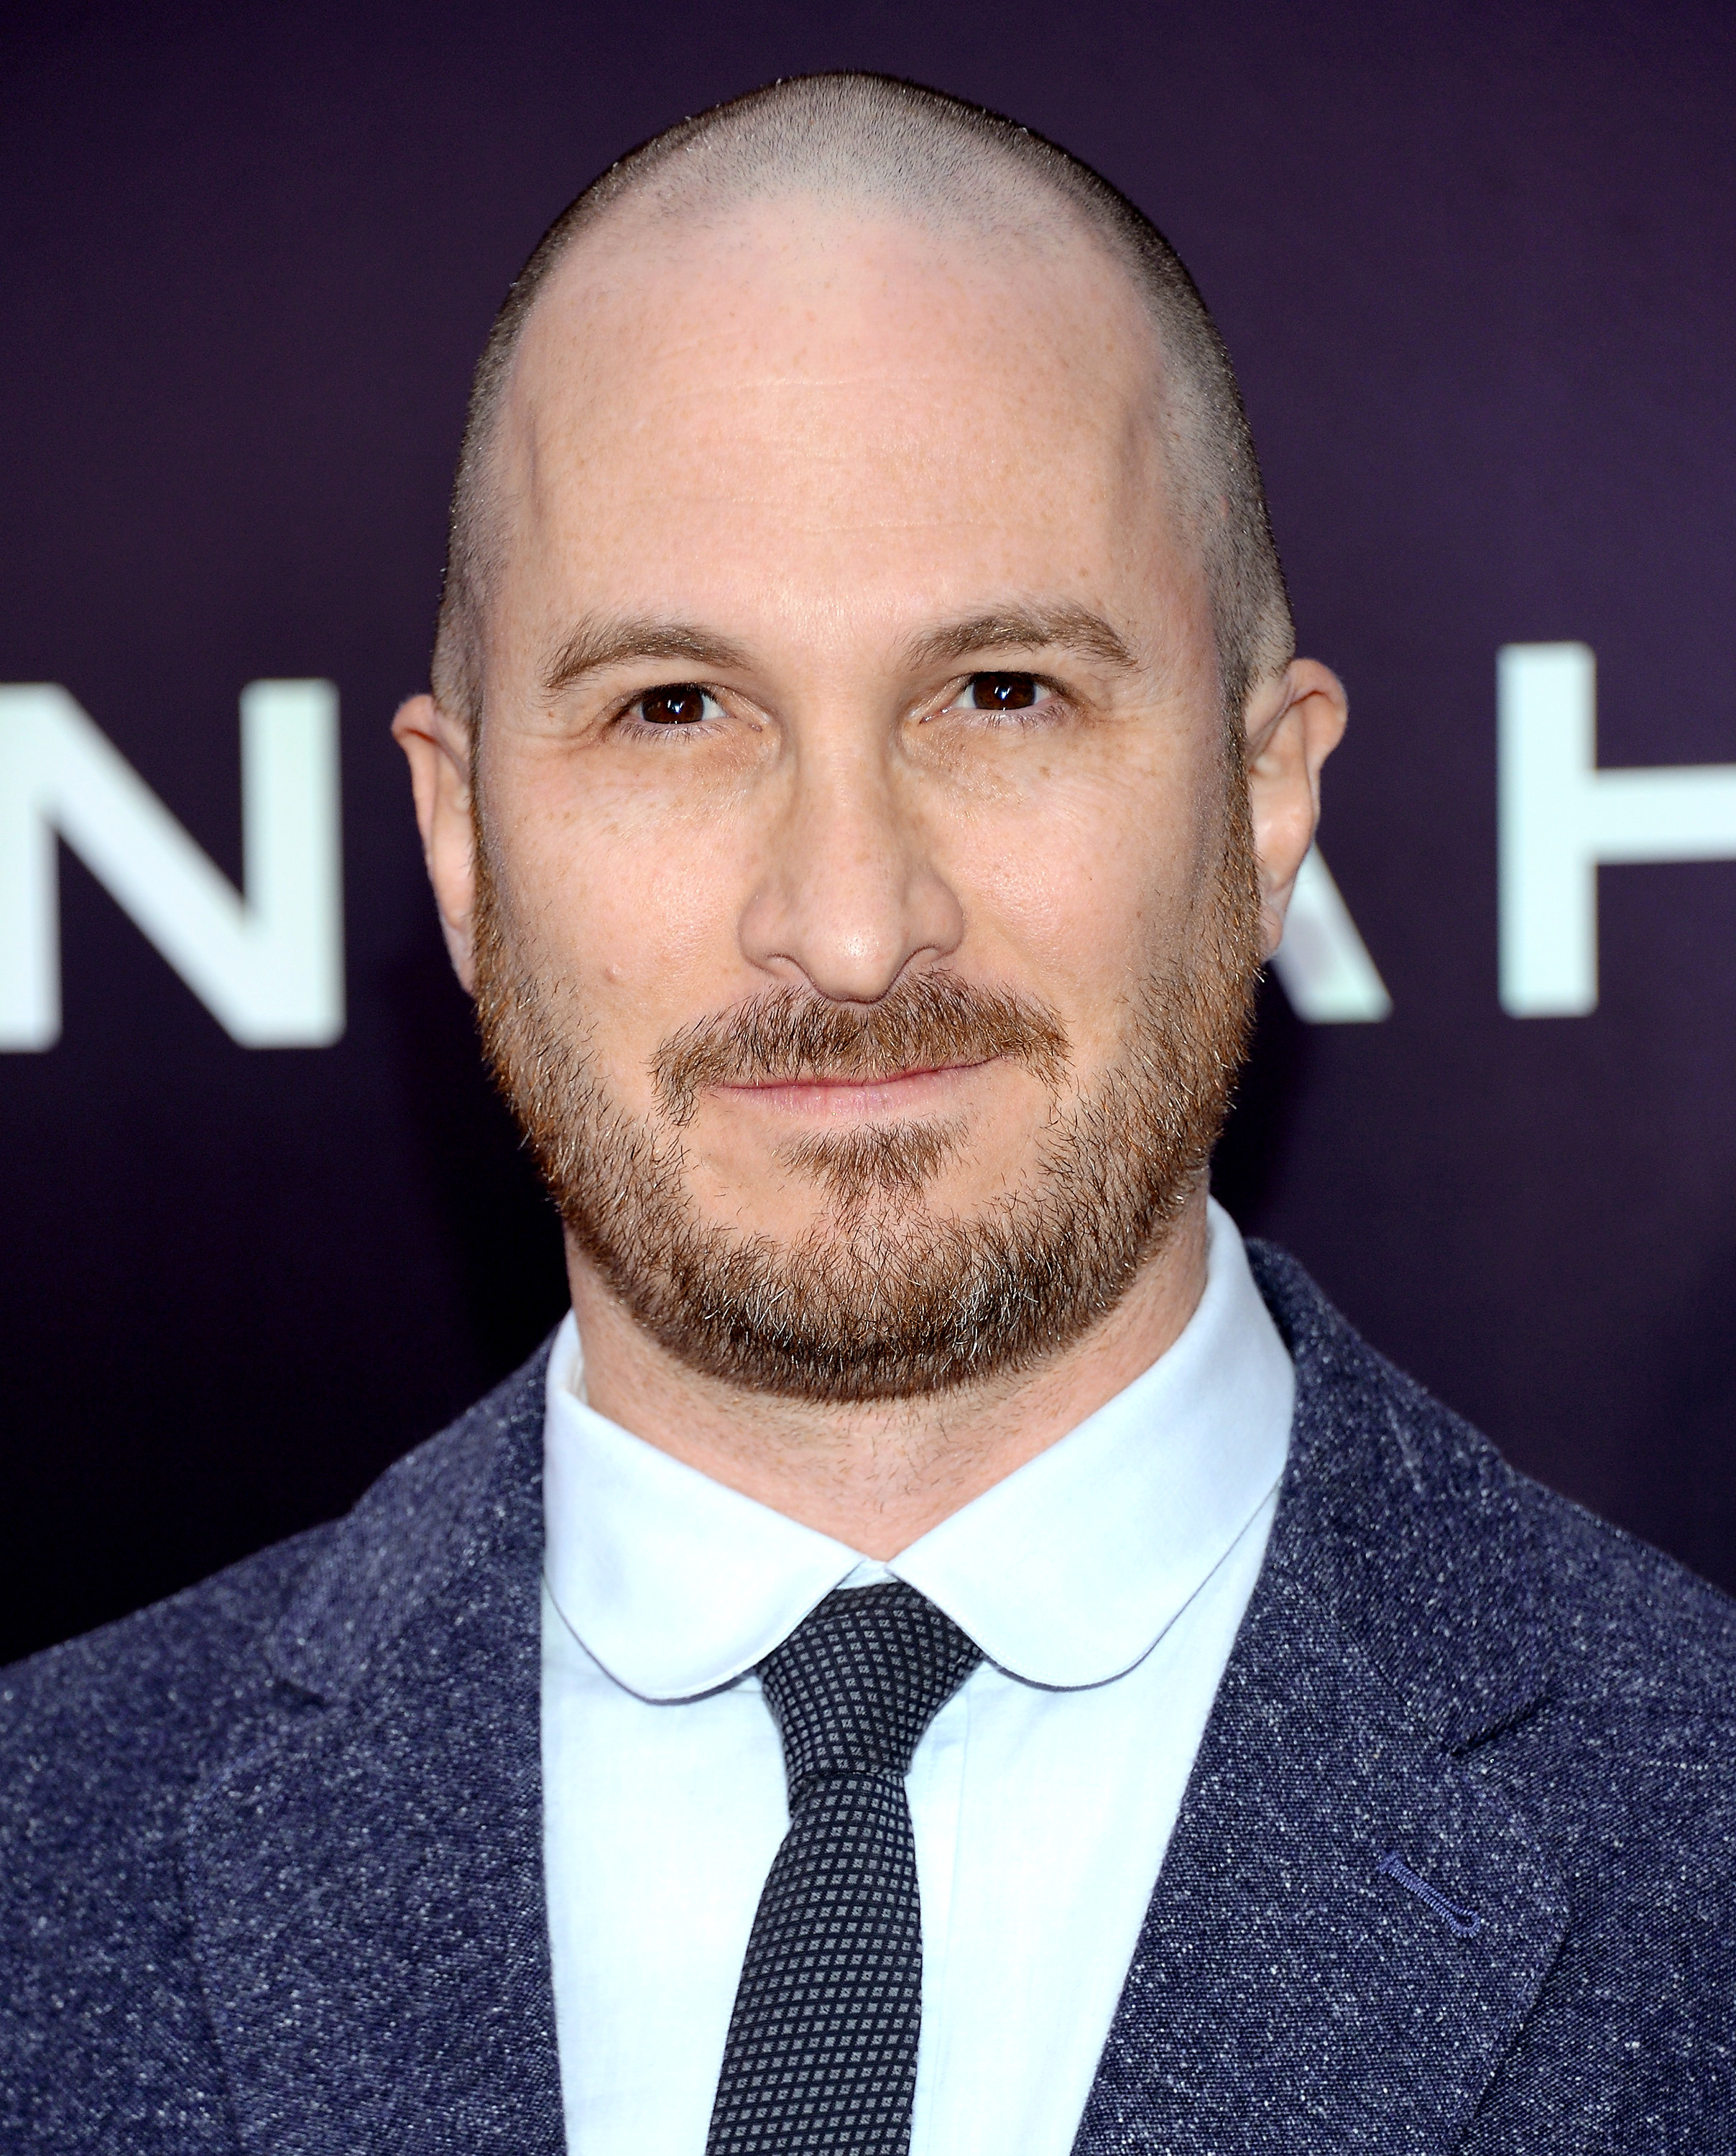 Director Darren Aronofsky attends the premiere of  Noah  at the Ziegfeld Theatre on in New York City on March 26, 2014.